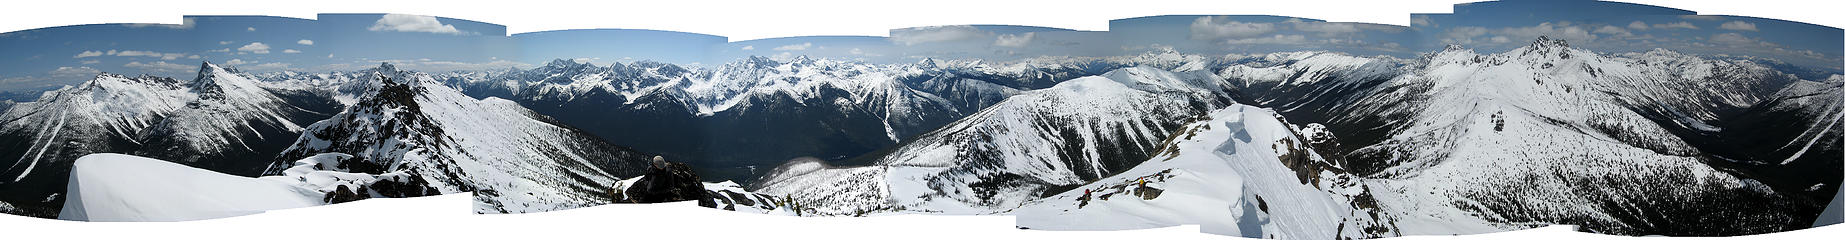 360 degree pan from Methow Pinnacles.  Previous pan is the center third of this pan.  (labeled)